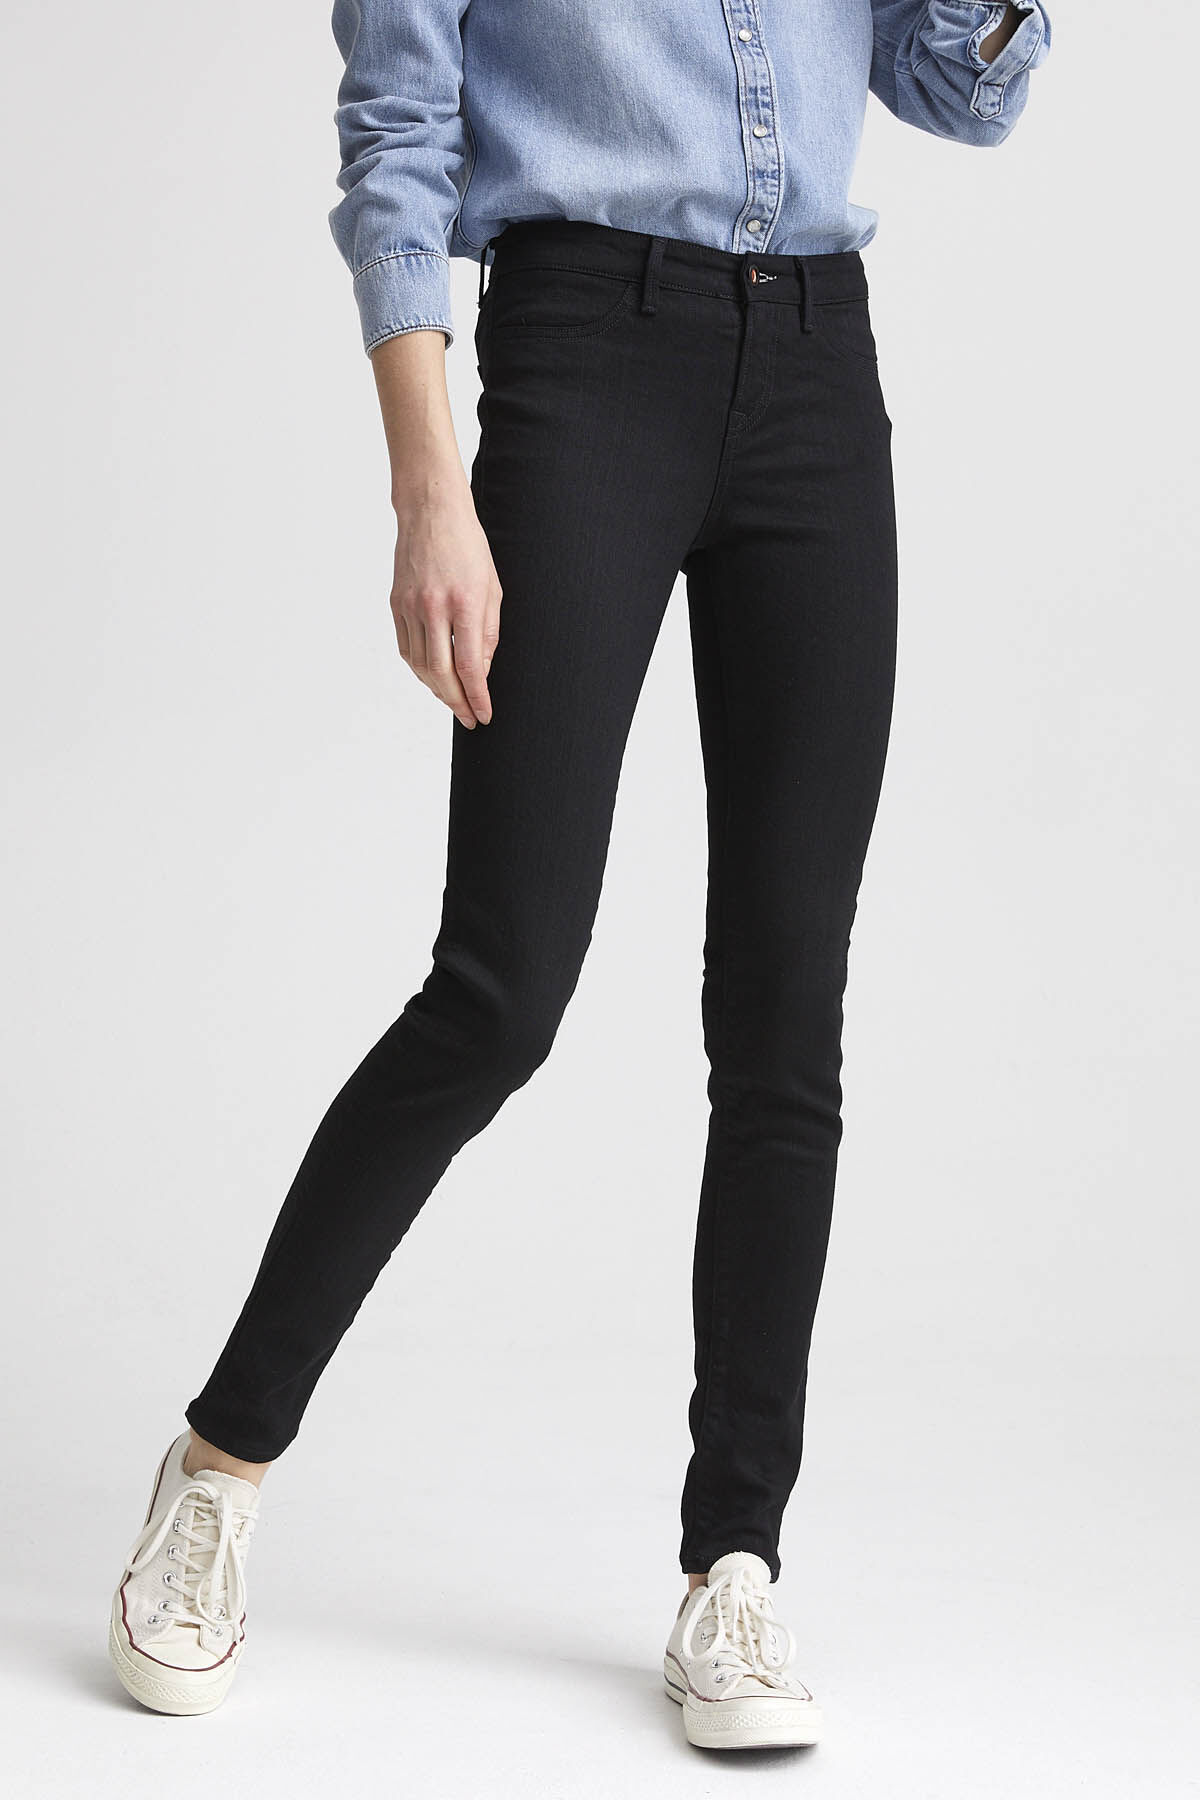 SPRAY Double Black Stretch Denim - Mid-rise, Tight Fit